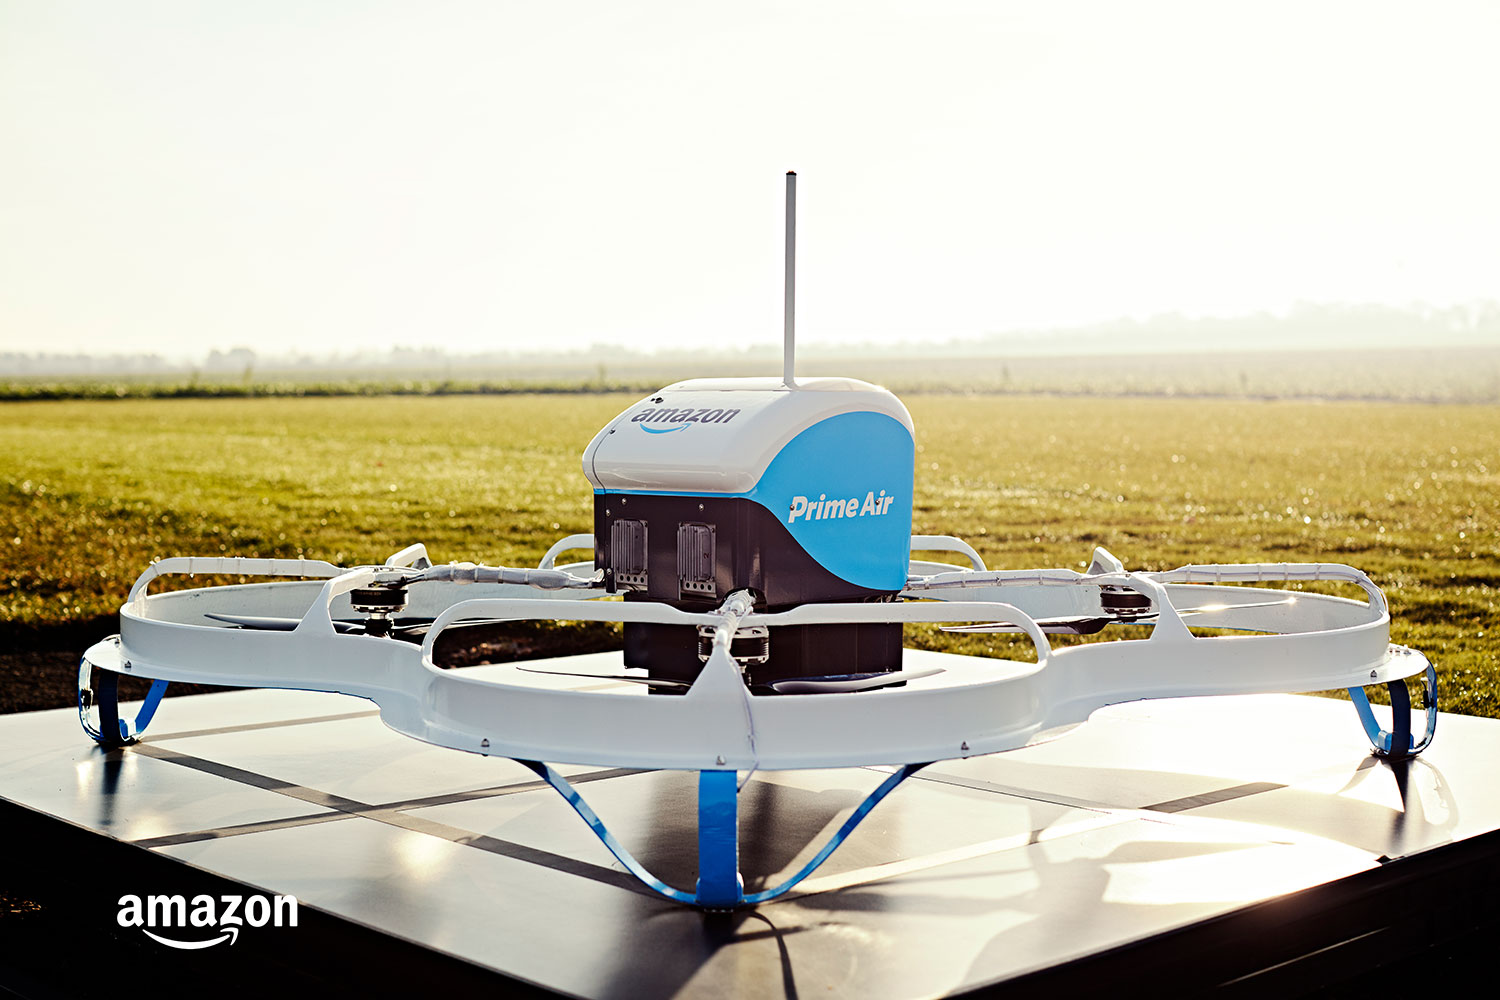 Amazon S Delivery Drones May Use Parachutes To Drop